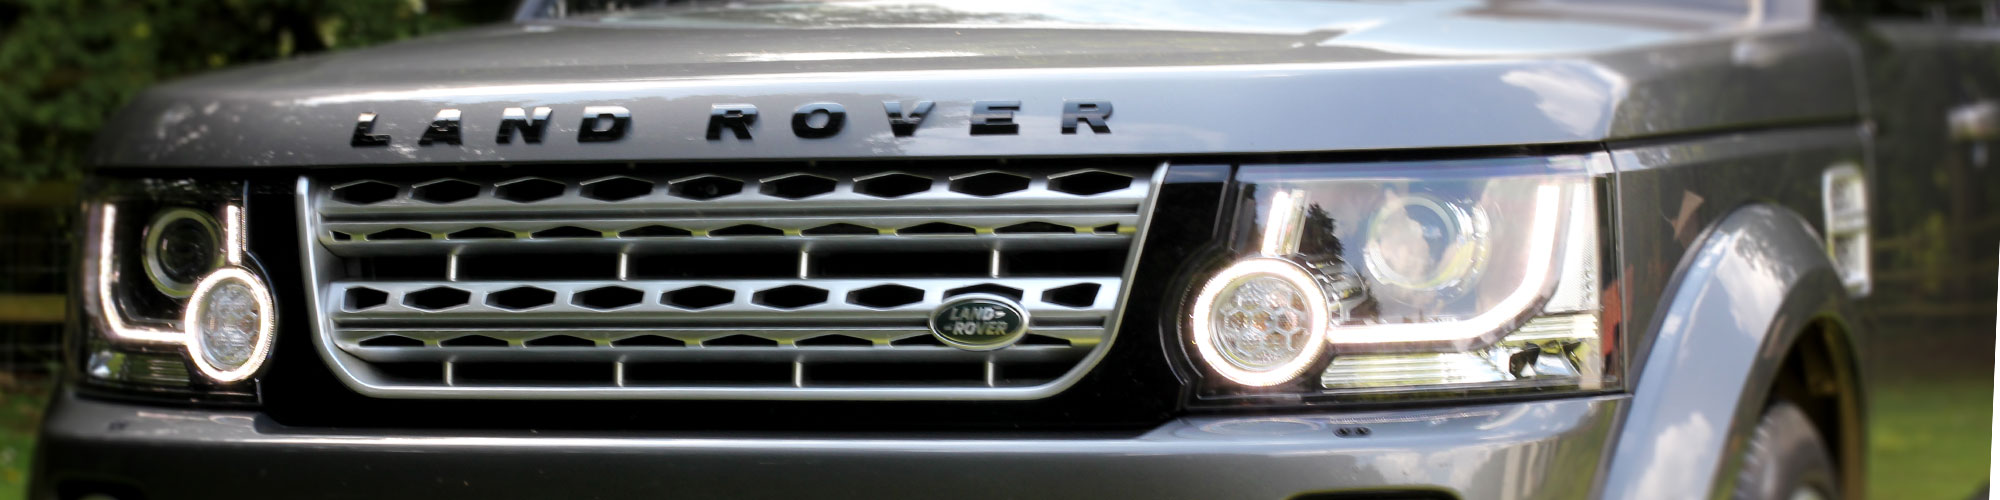 Close-up view of front of armoured Land Rover Discovery